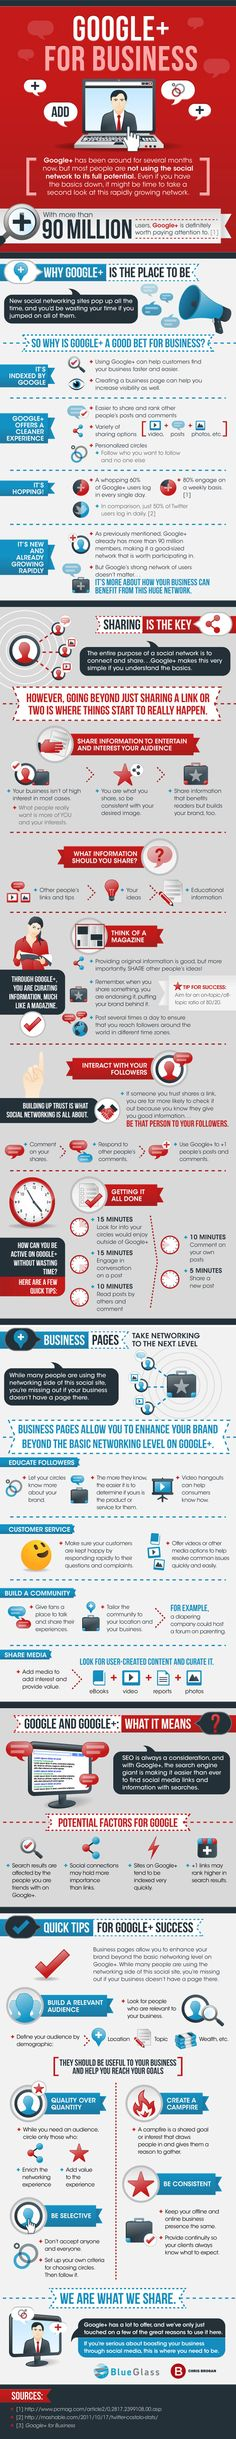 Here are 40 of the best Google+ Small Business #Marketing Tips in an #Infographic